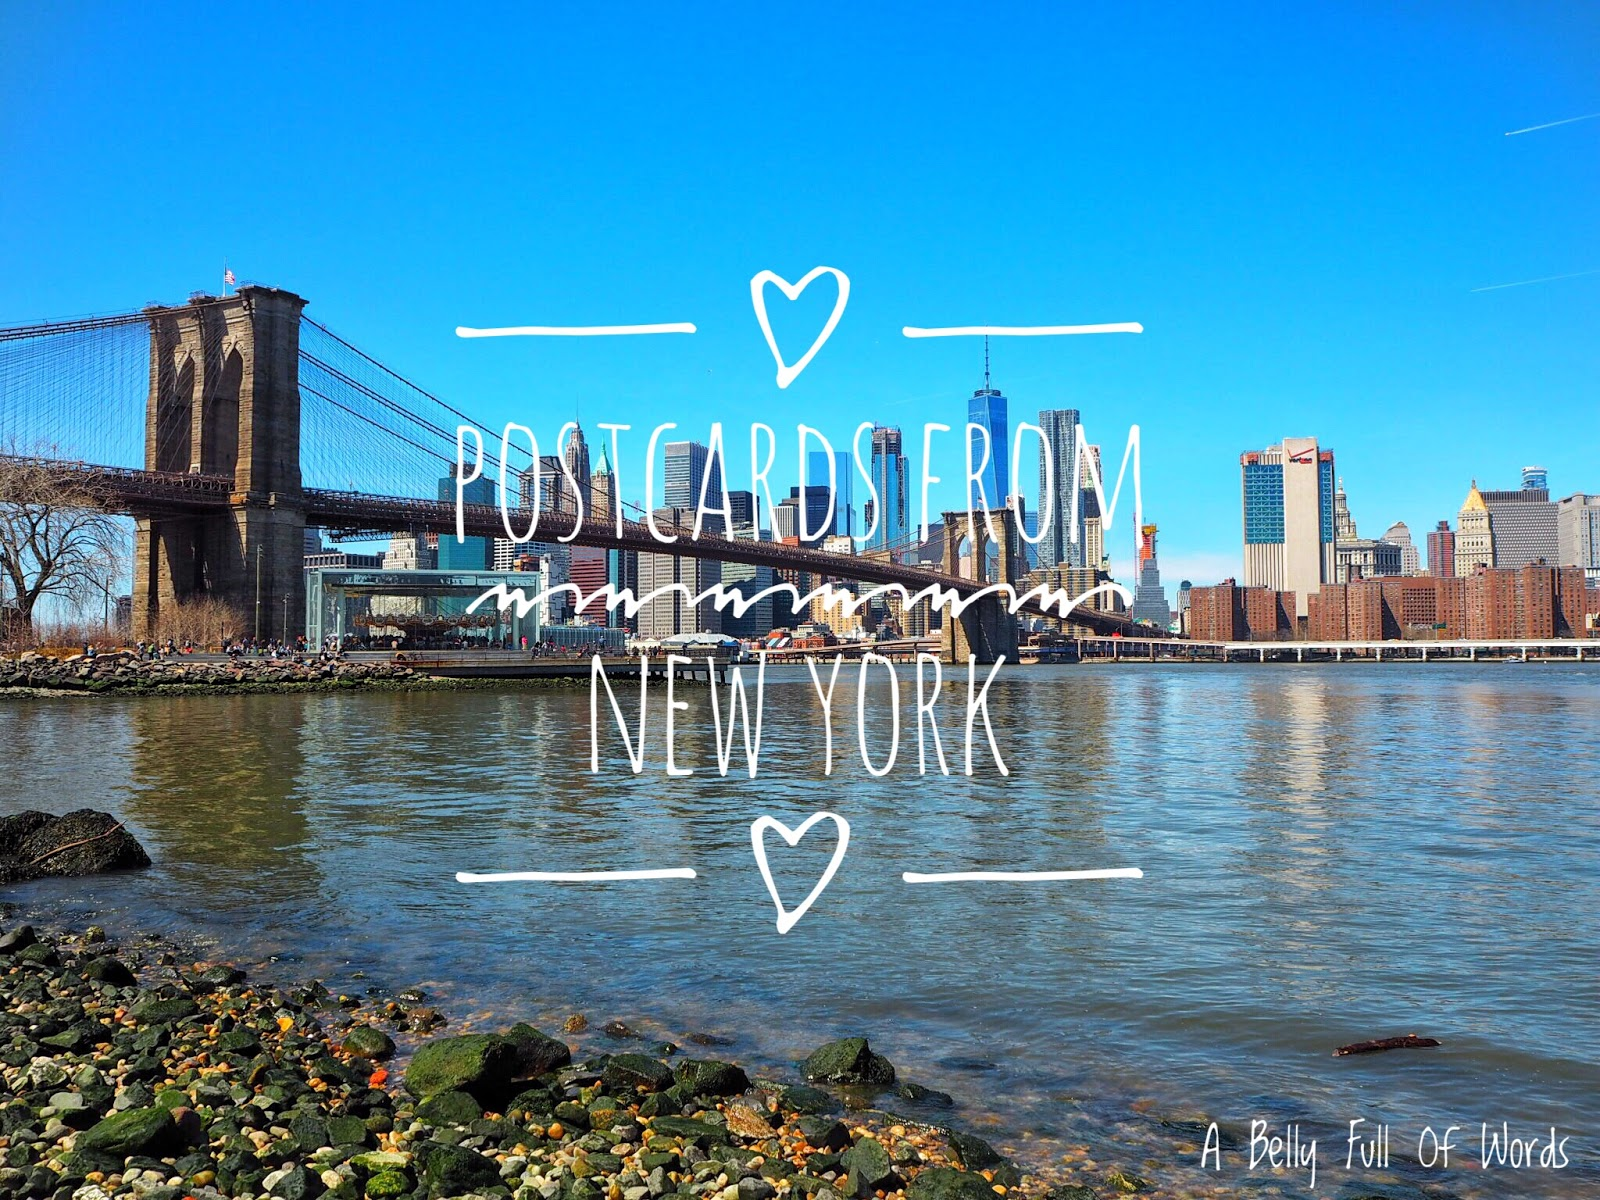 Video: Postcards from New York